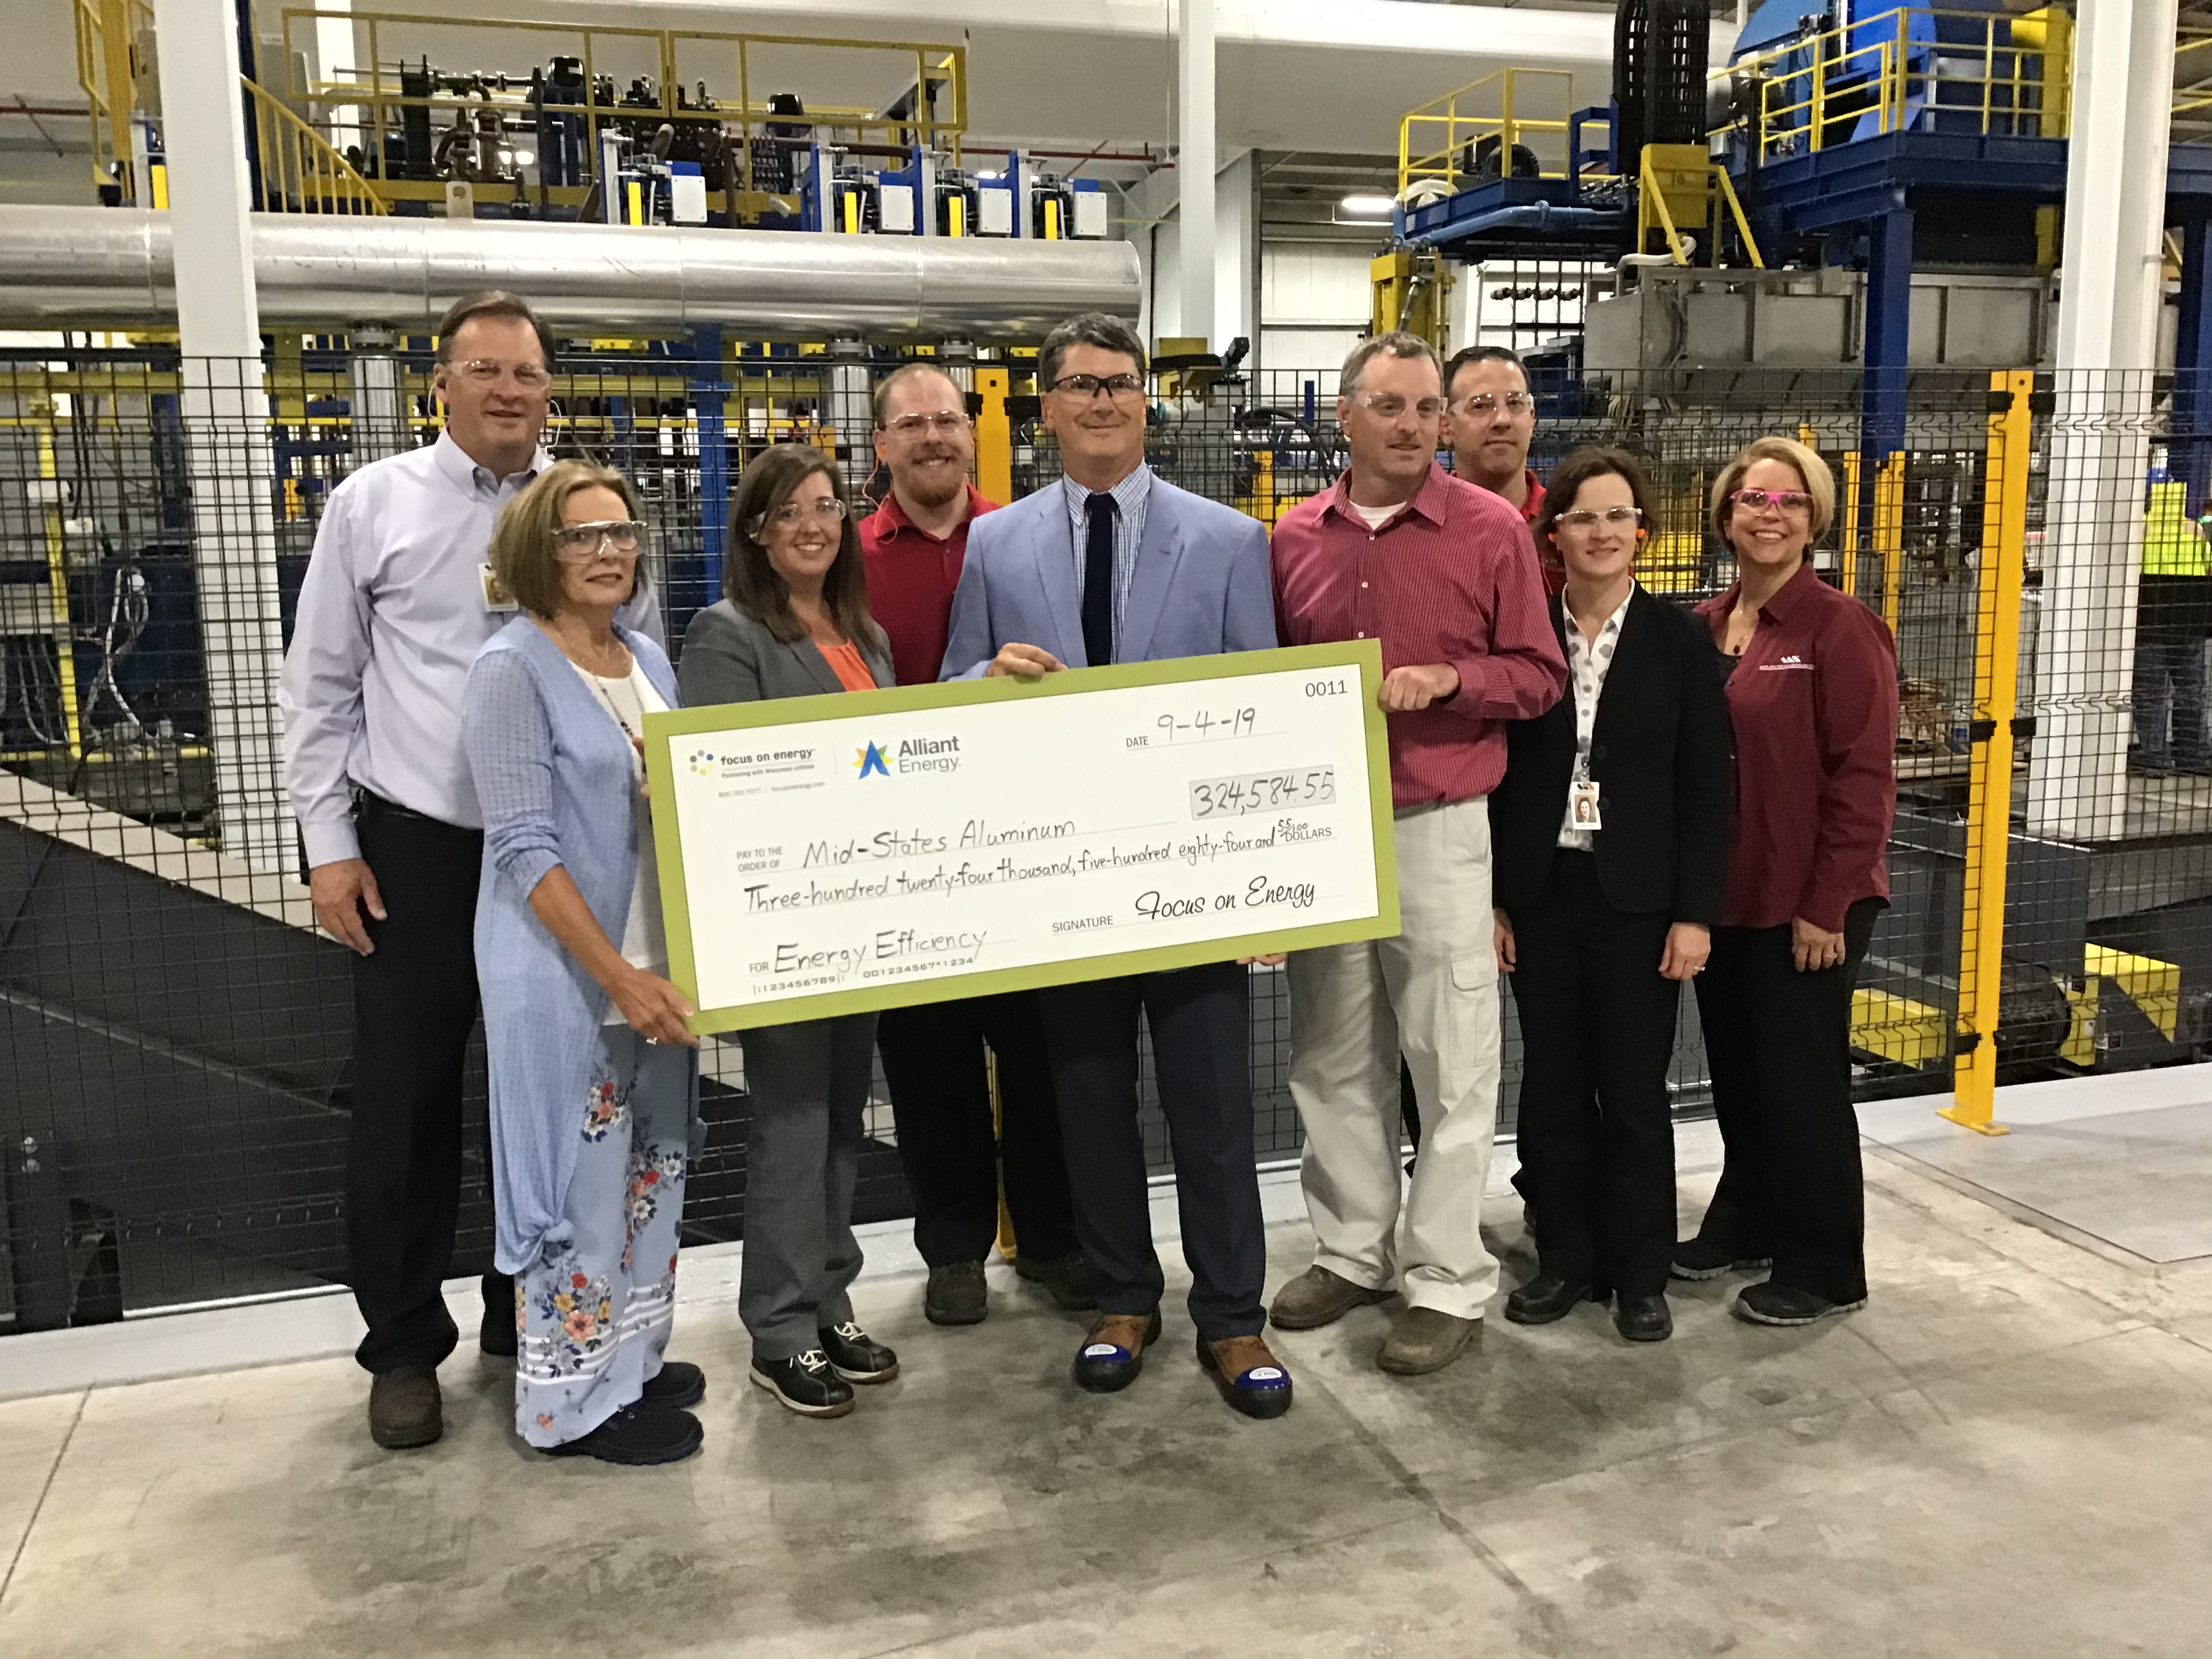 A group of formally-dressed people wearing safety goggles gathers inside an industrial building, holding a large presentation check.